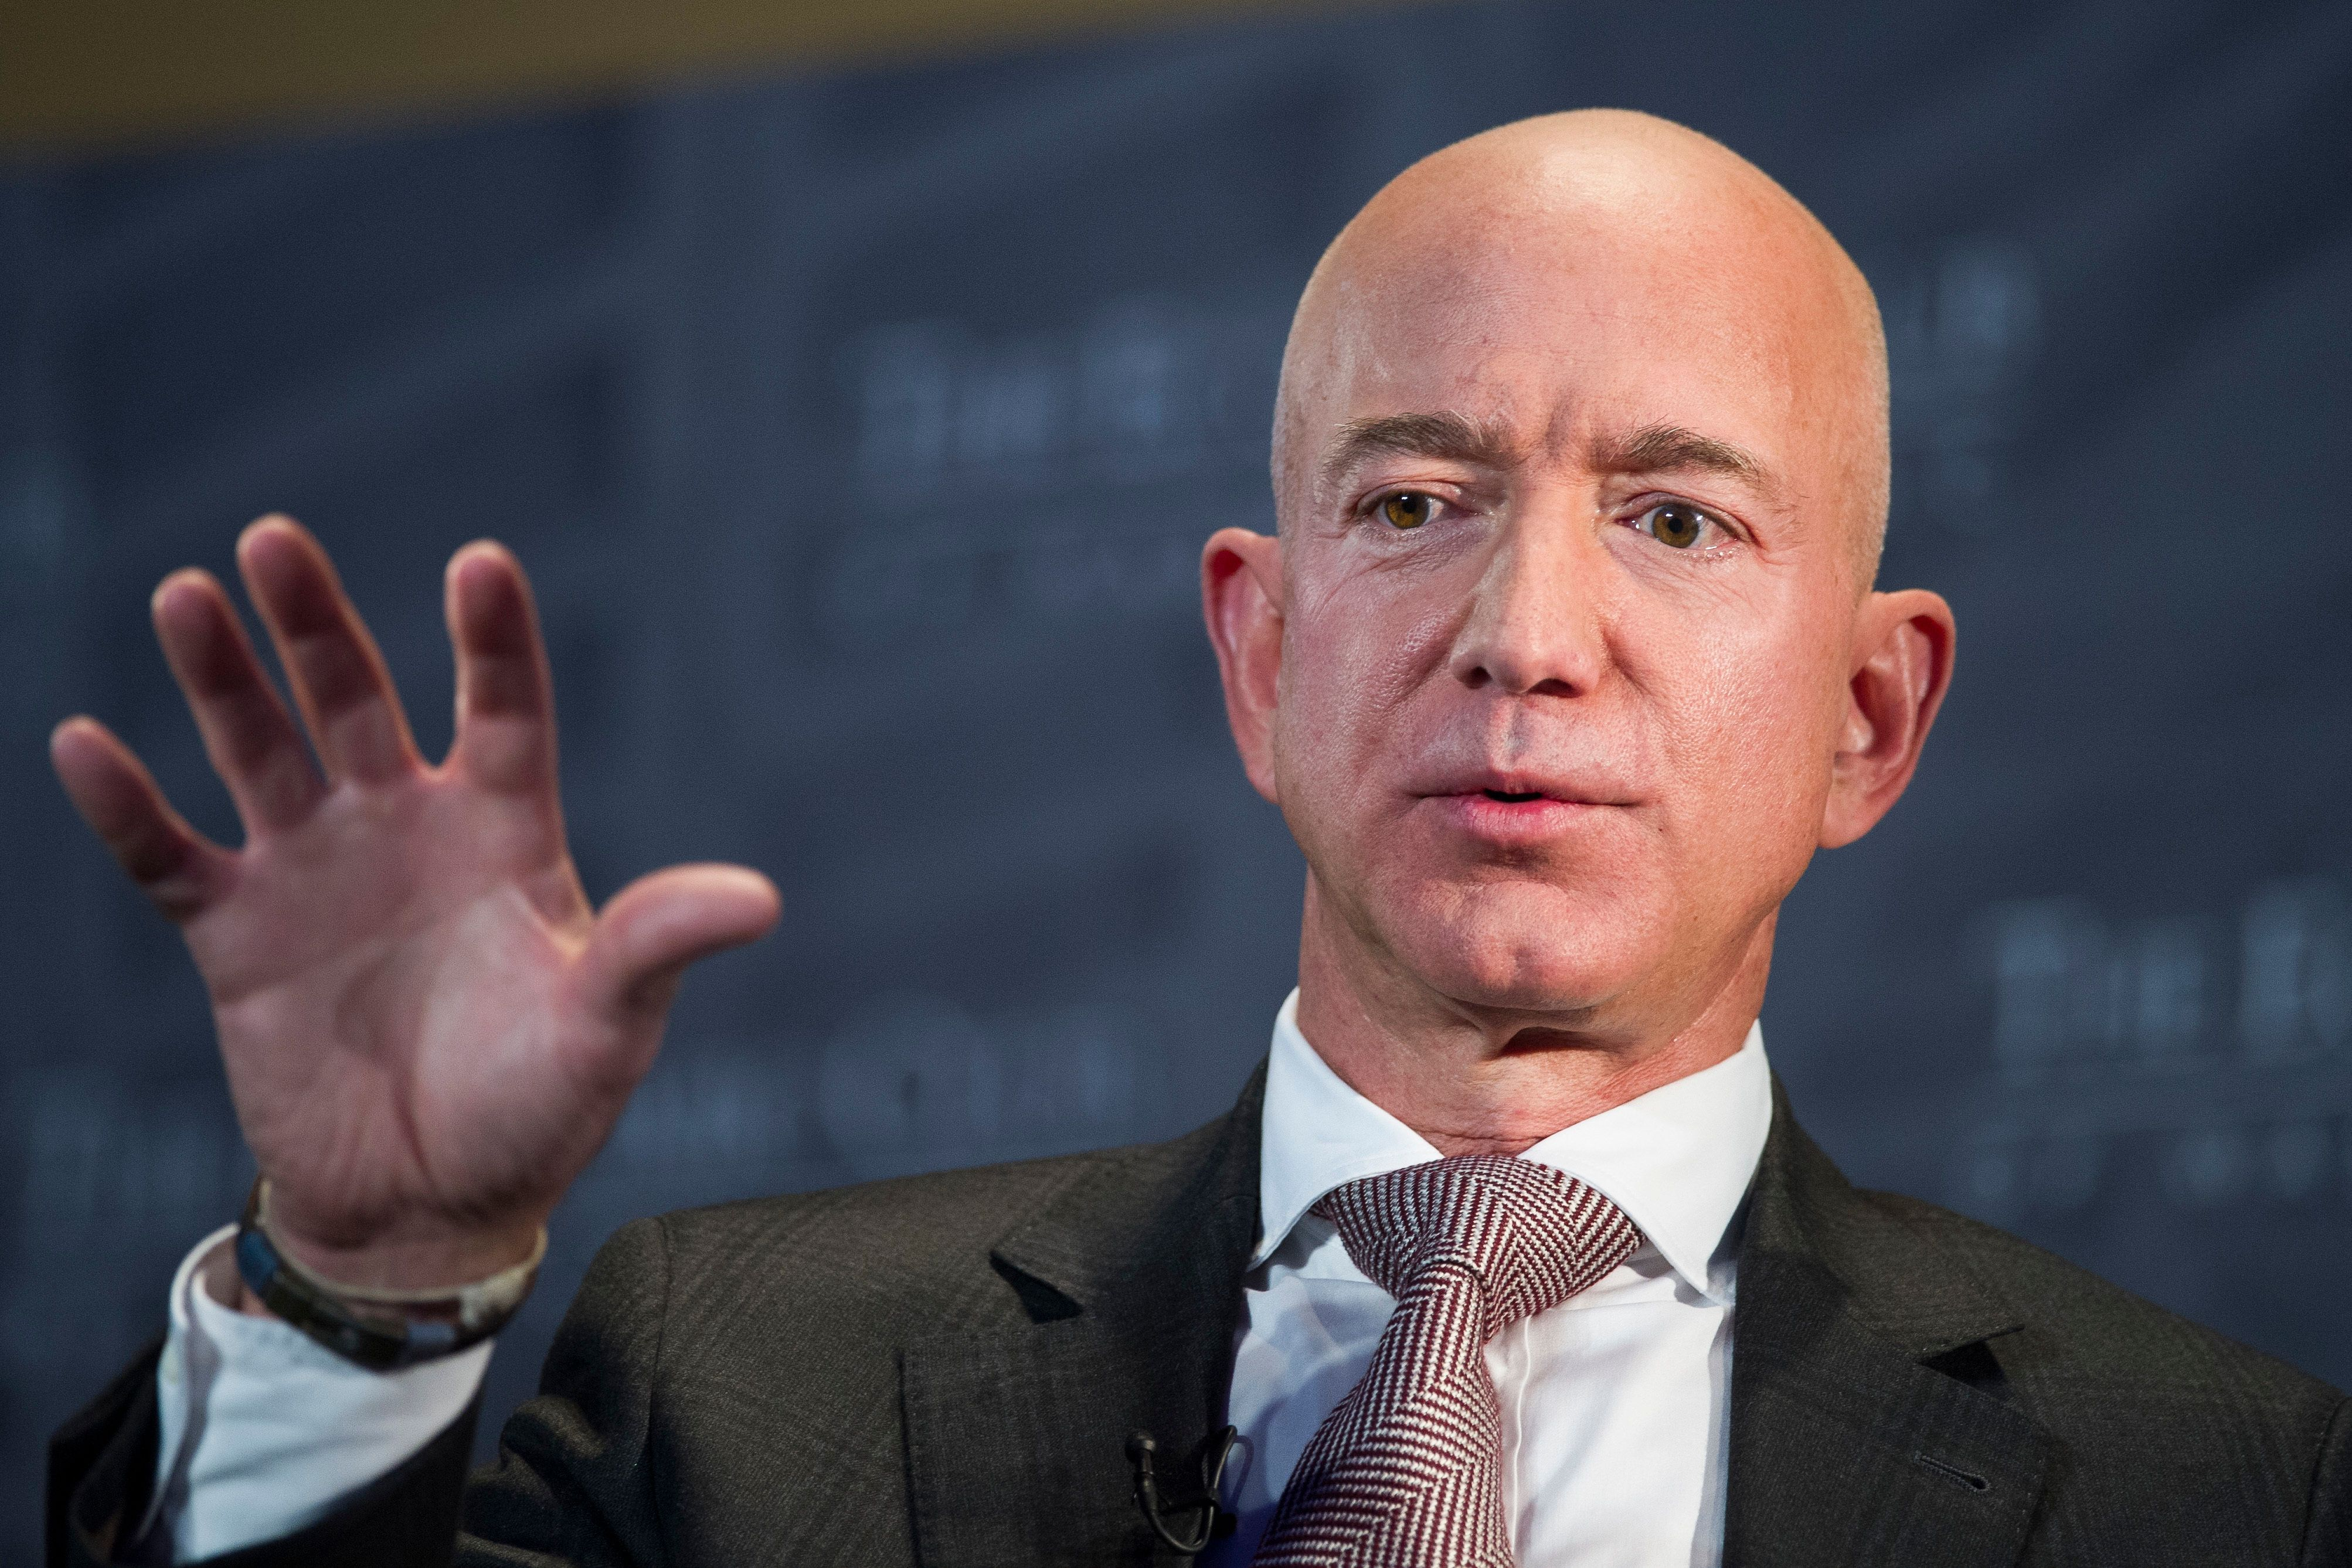 Jeff Bezos, Amazon founder and CEO, speaks at the Economic Club of Washington on Sept. 13, 2018. Elected officials in New Yor